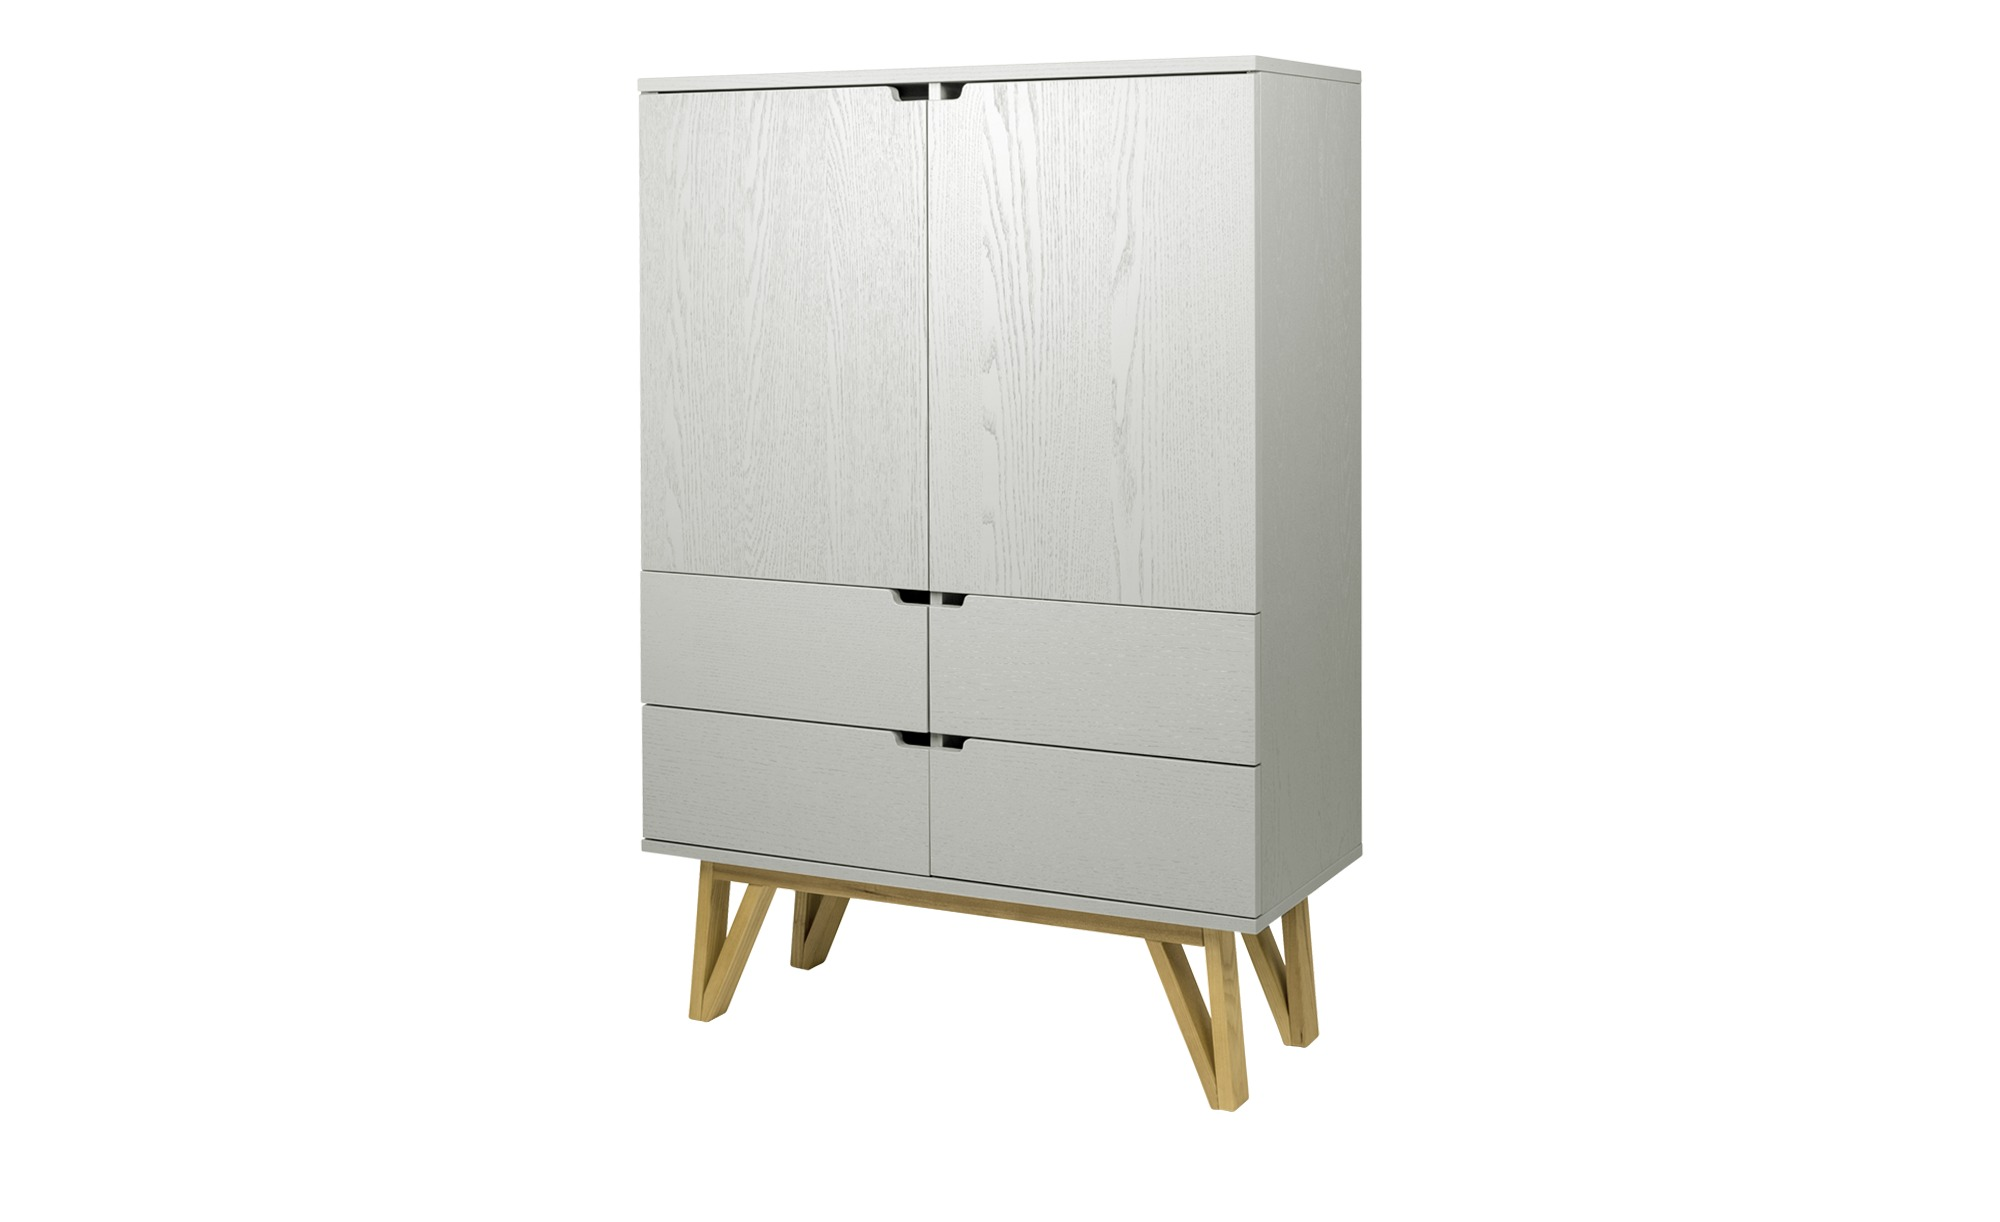 Highboard Lorens Grau Masse Cm B 92 H 110 T 39 Kommoden